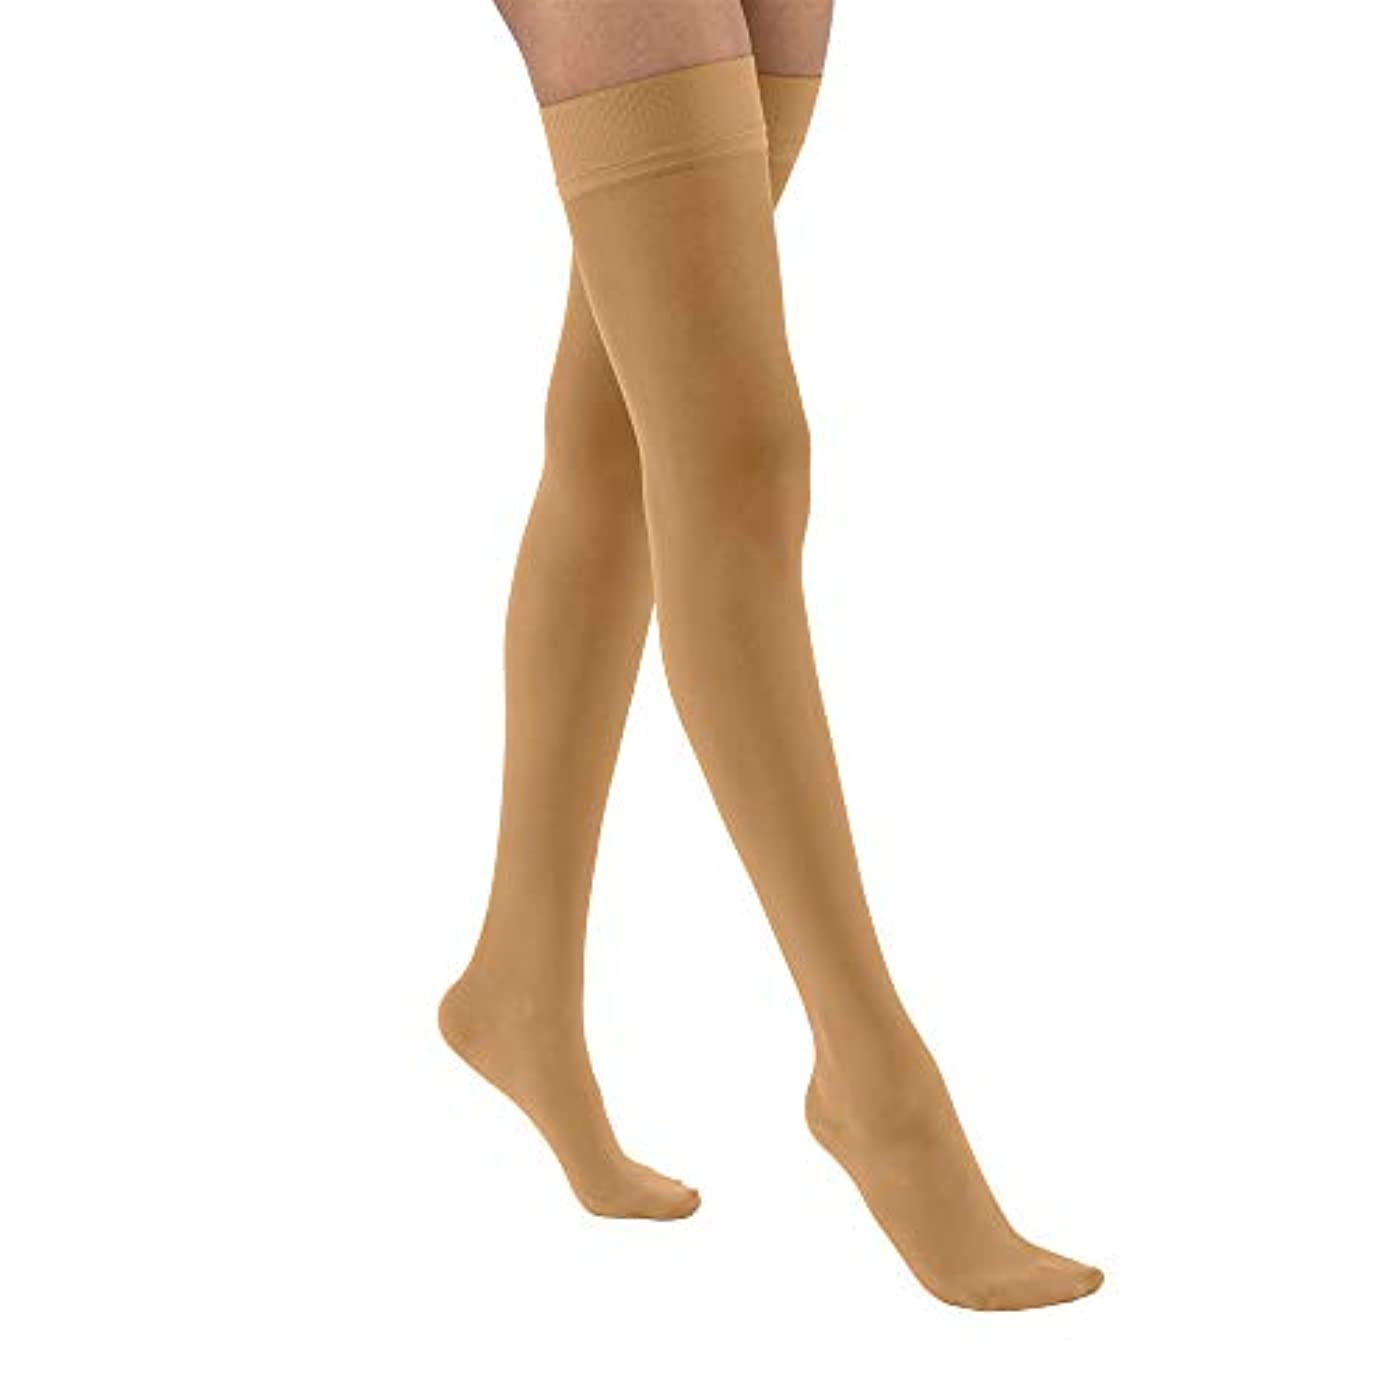 干渉形愛情深いJobst 122320 Ultrasheer Thigh Highs 20-30 mmHg Firm with Silicone Dot Top Band - Size & Color- Suntan Small